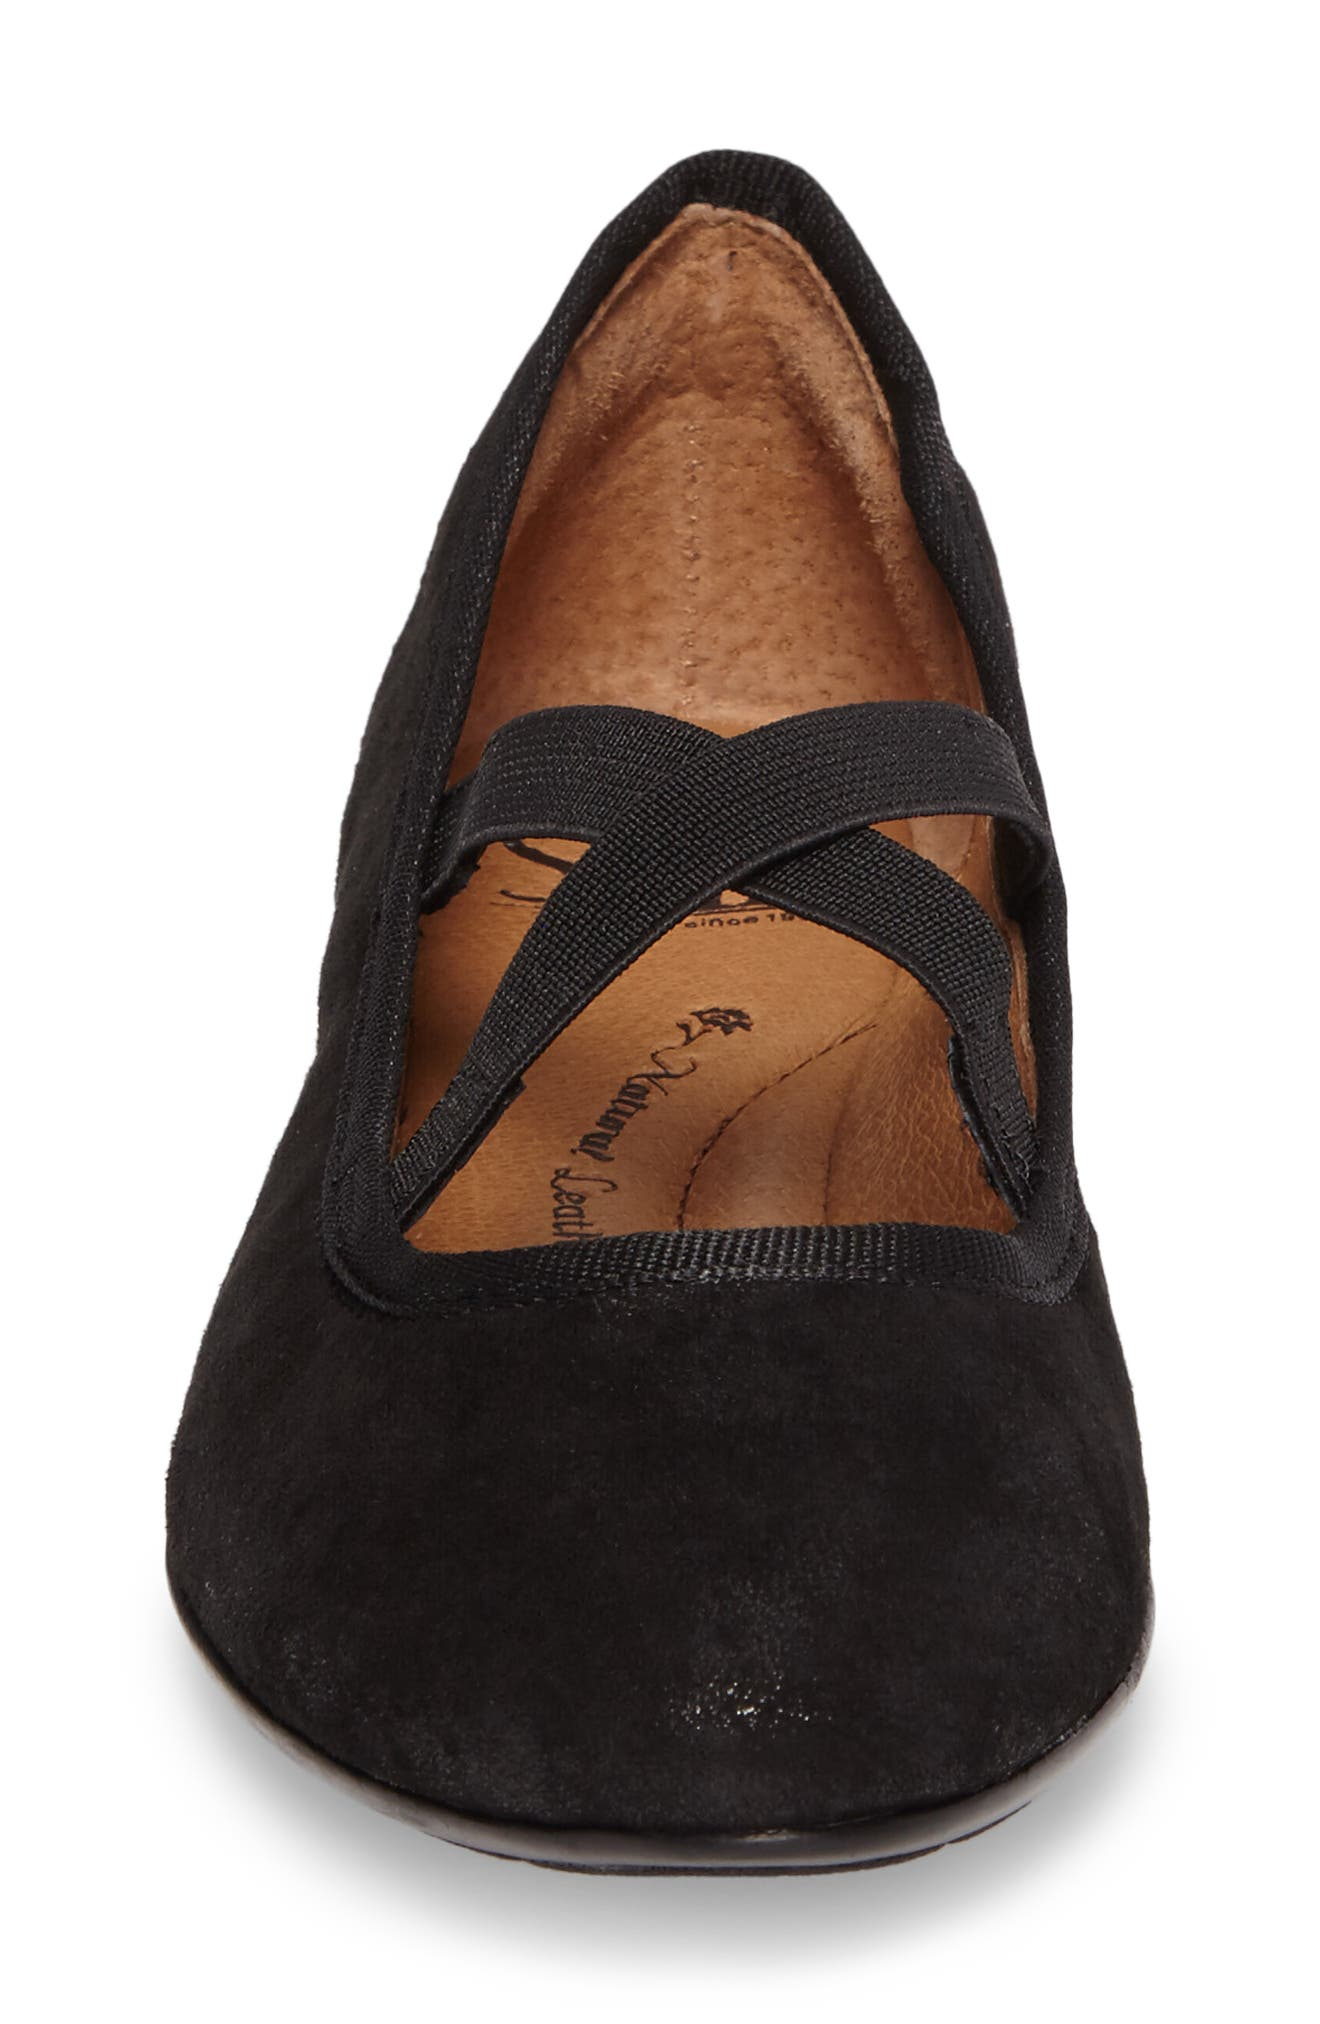 Barris Ballet Flat,                             Alternate thumbnail 4, color,                             Black Suede